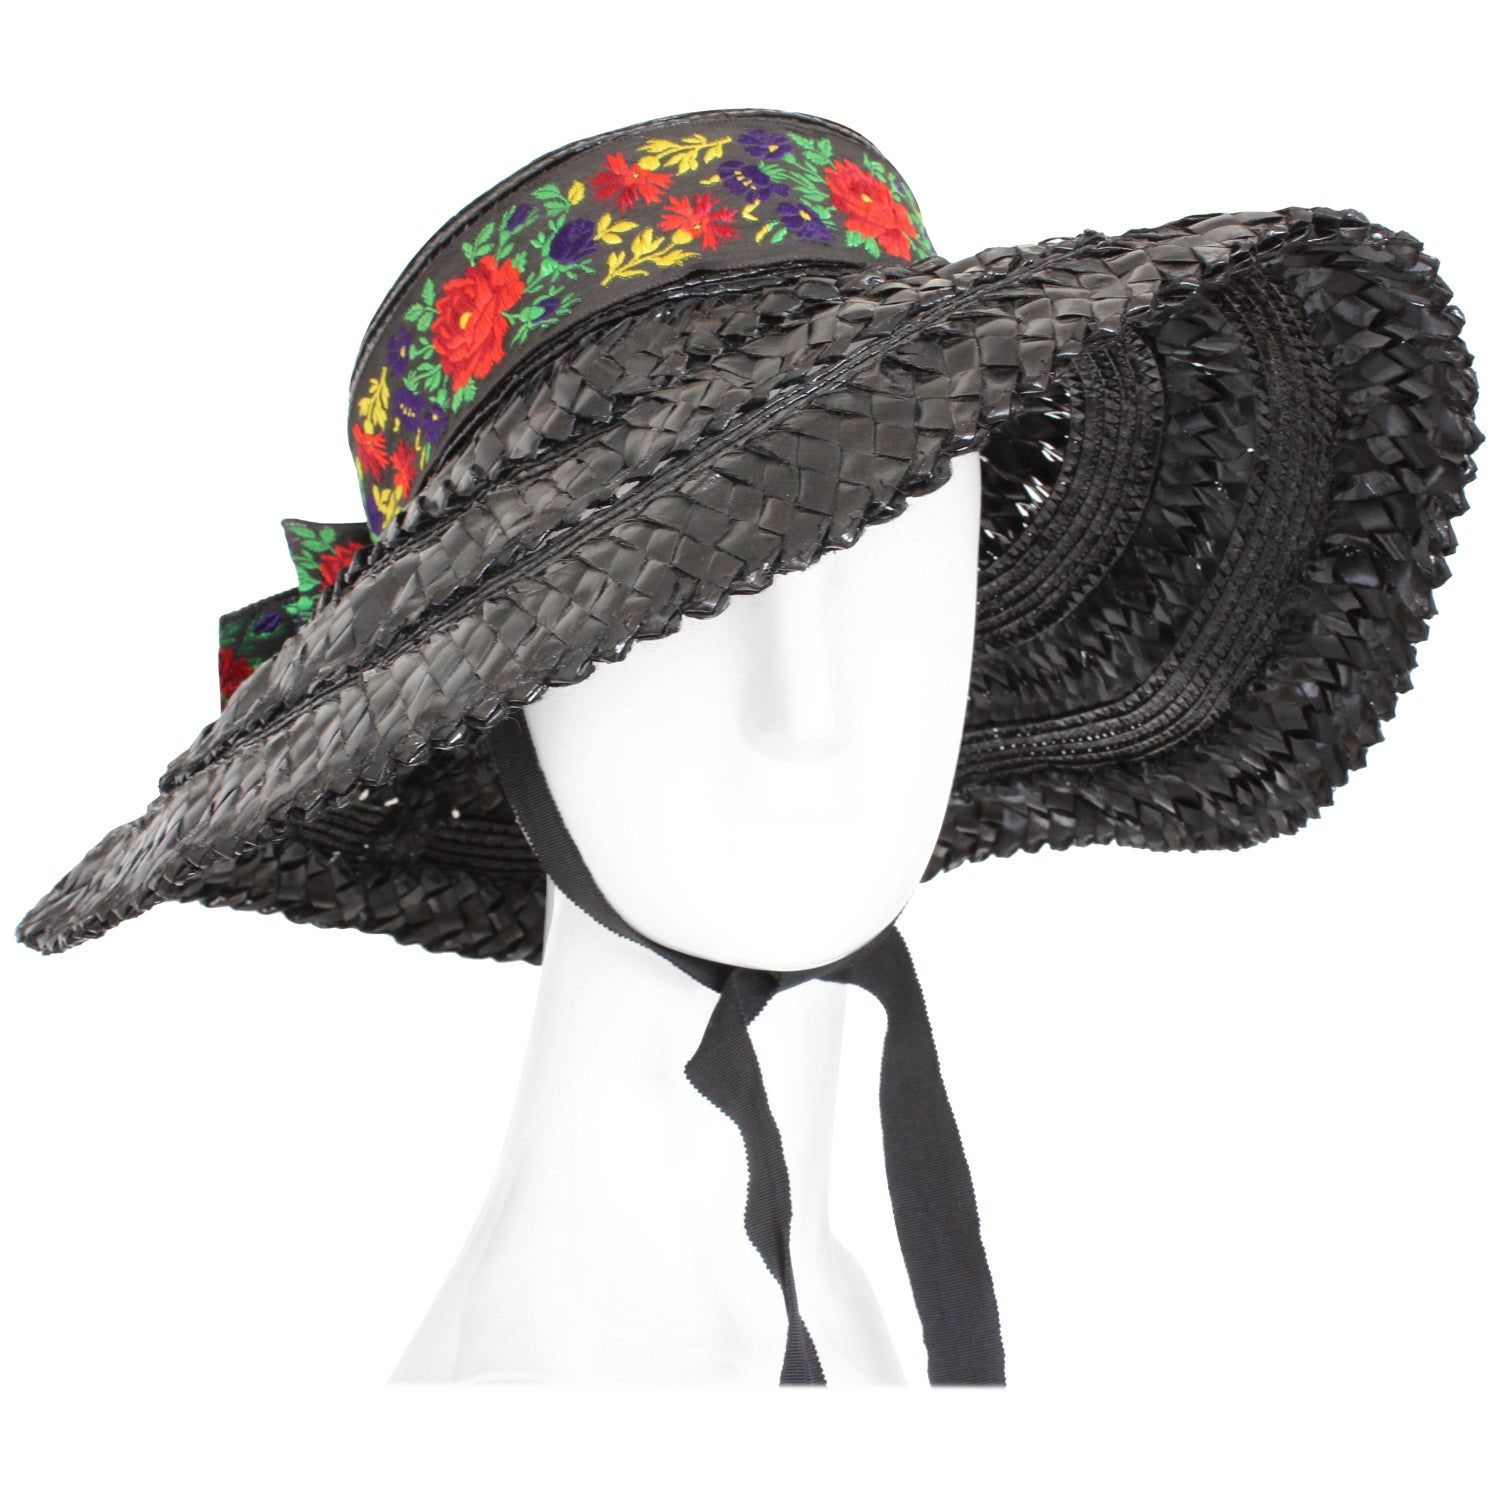 073424815f7 Yves Saint Laurent Rive Gauche Wide Brim Straw Hat with Florals, 1970s